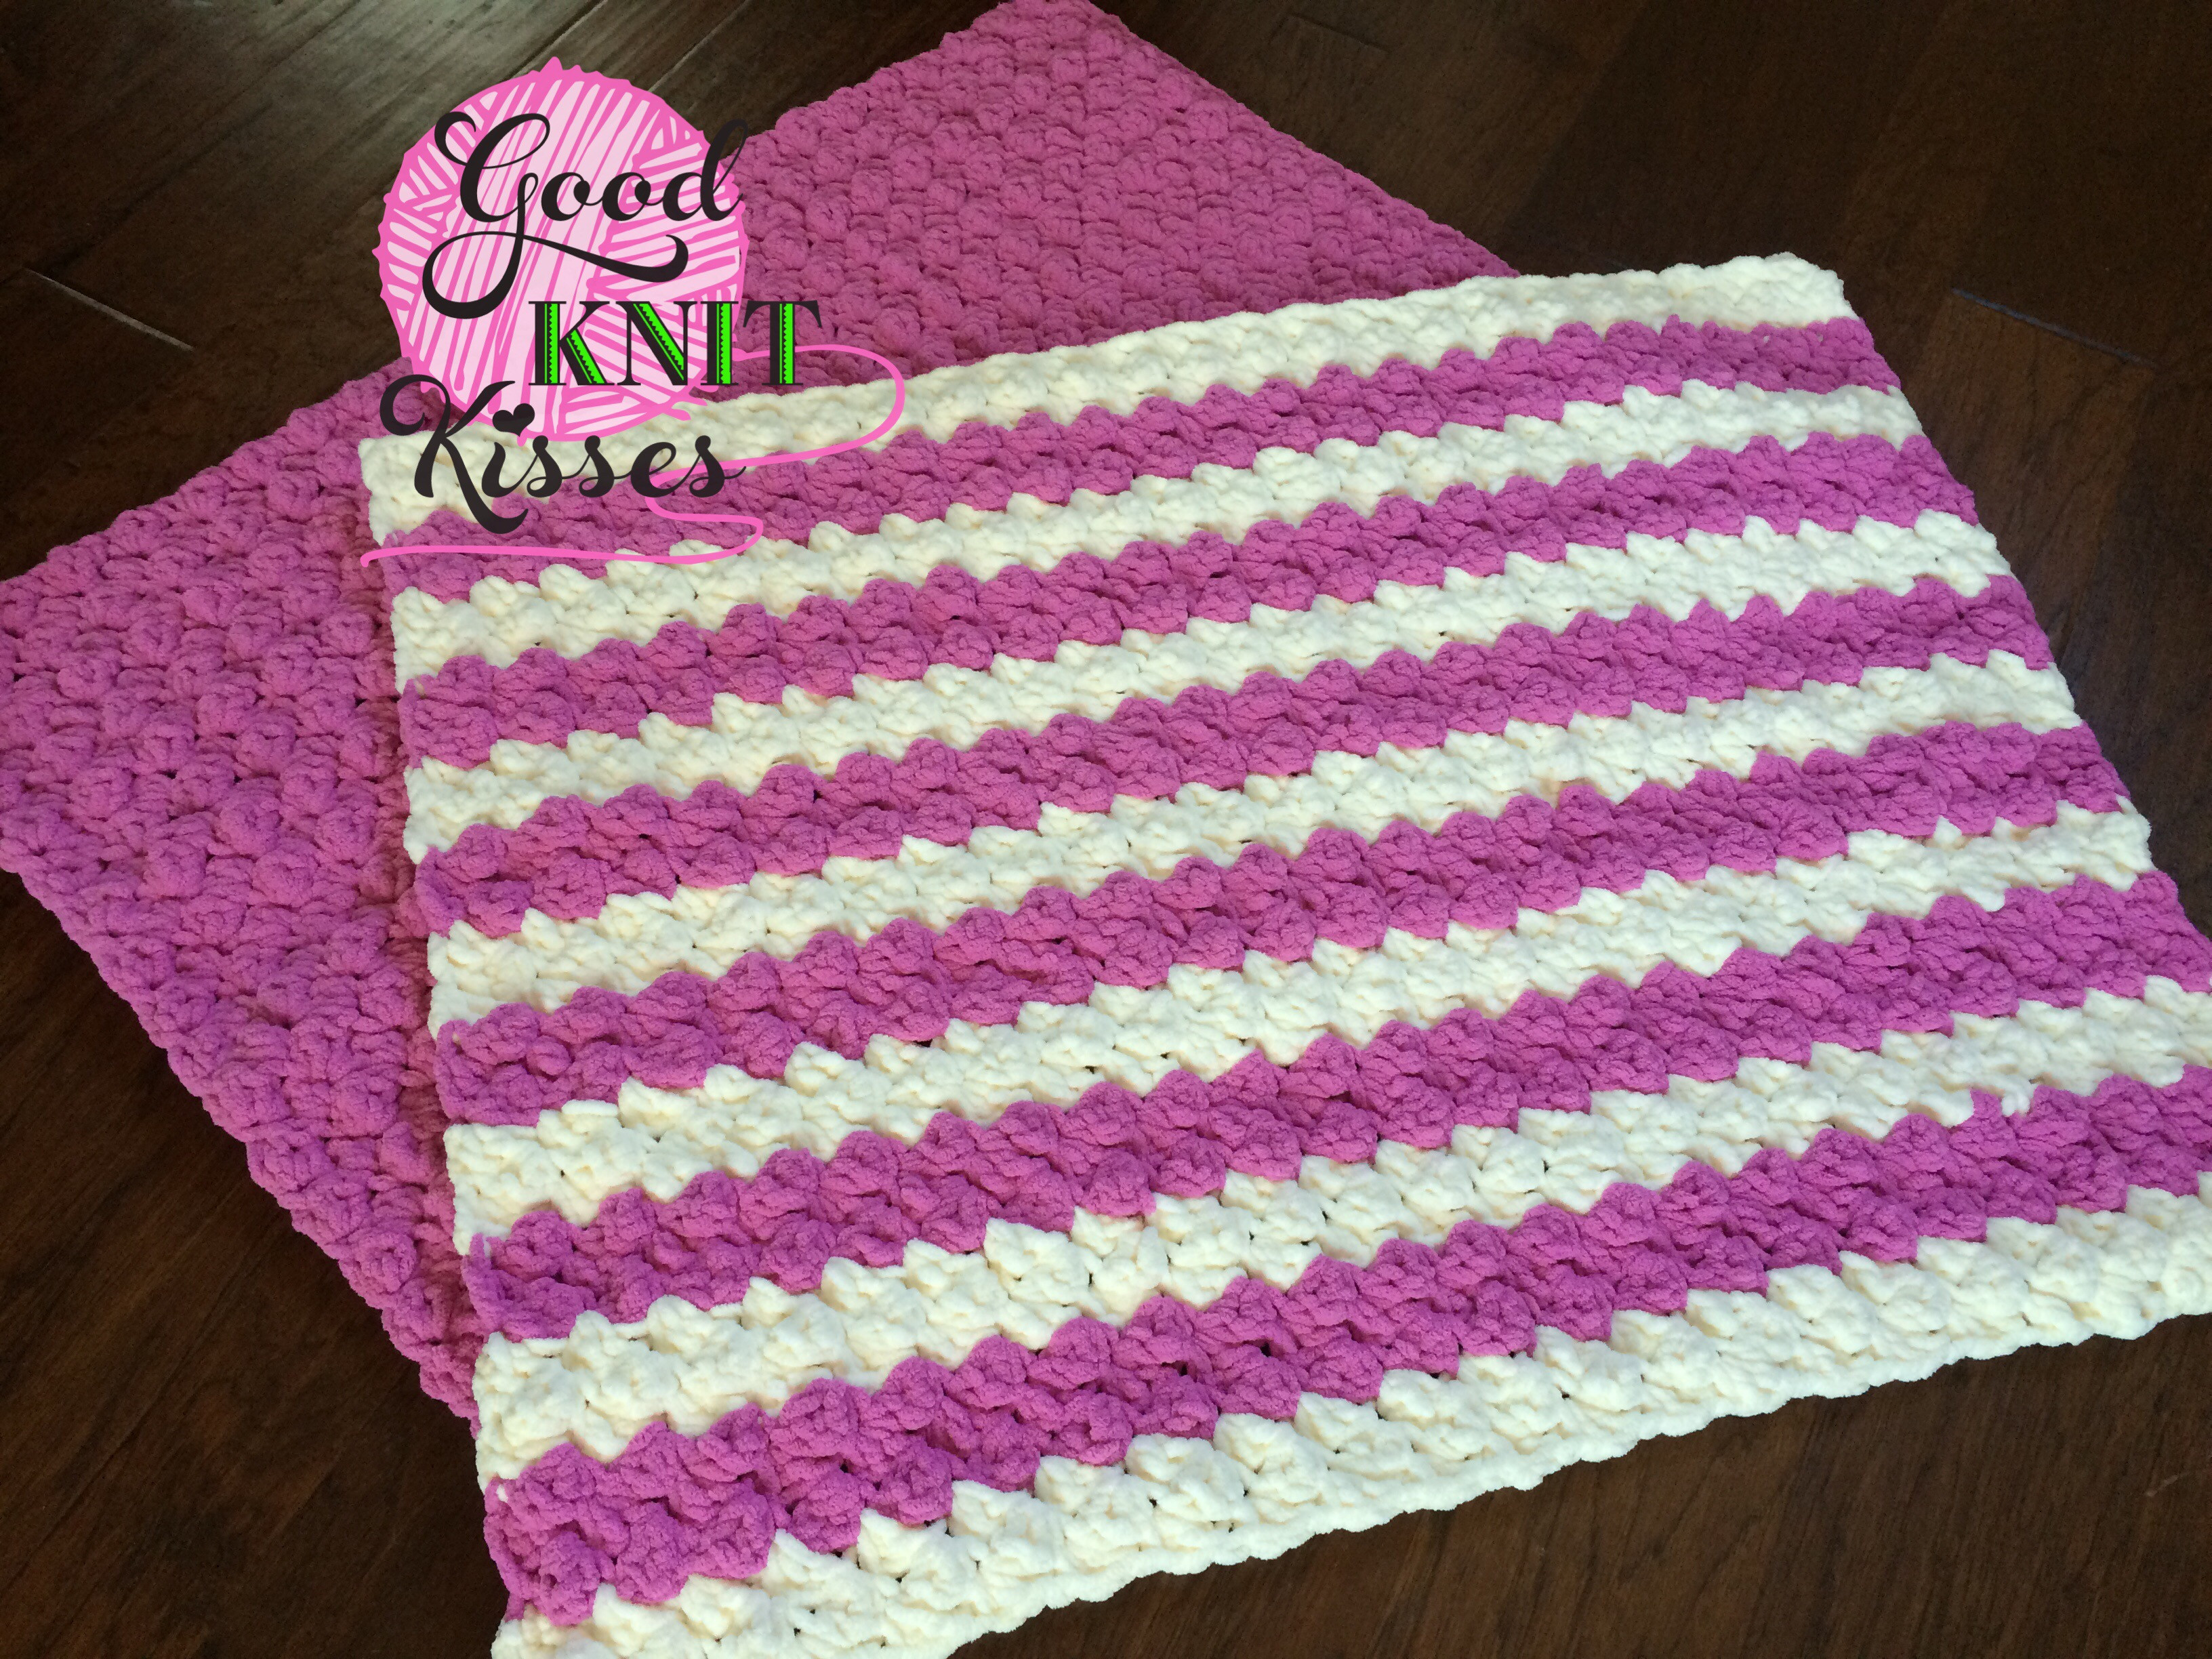 Crochet Baby Blanket Patterns Beautiful Marshmallow Crochet Baby Blanket Goodknit Kisses Of Fresh 44 Models Crochet Baby Blanket Patterns